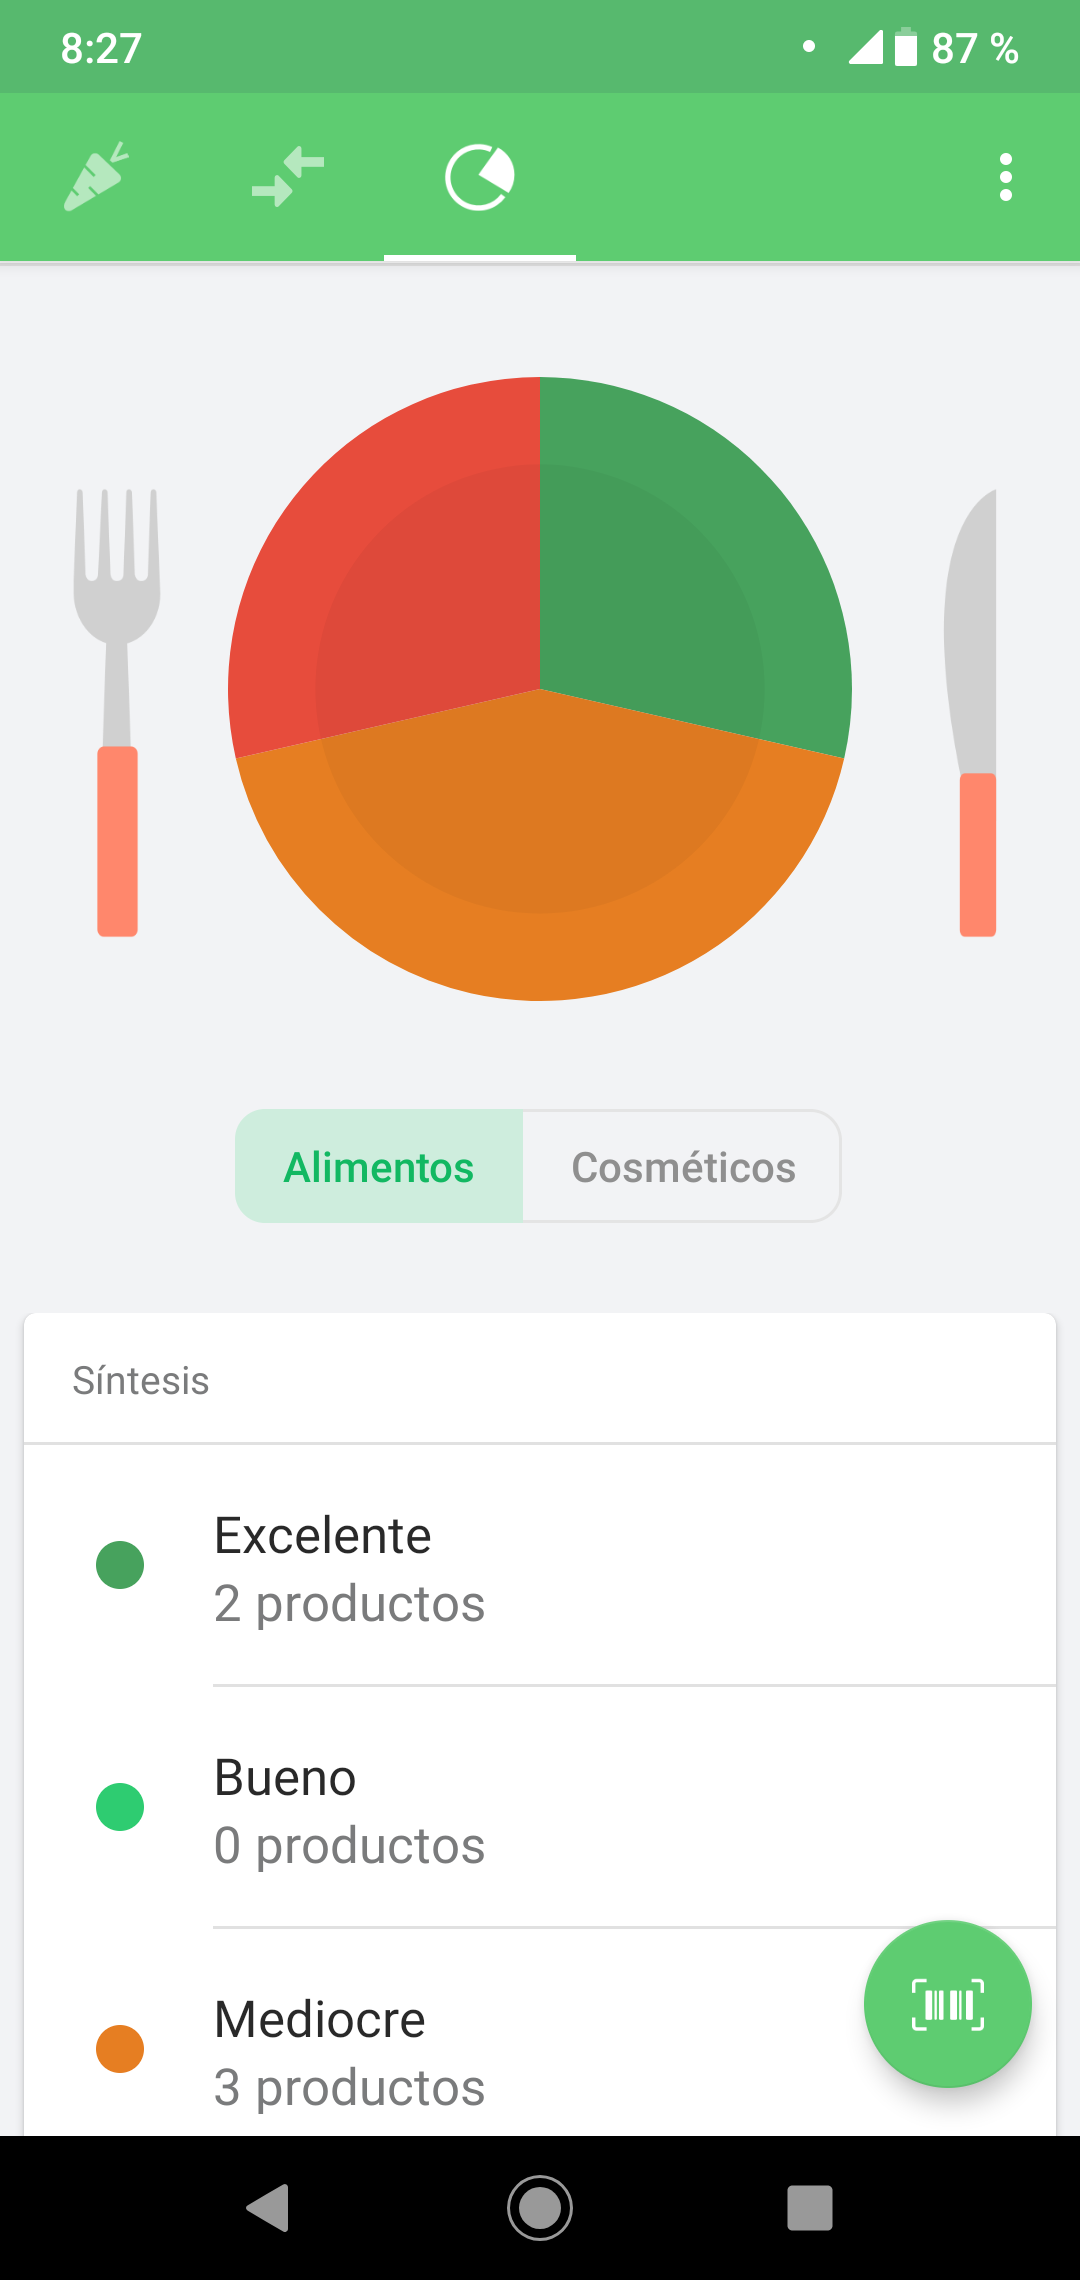 Estadísticas productos analizados Yuka